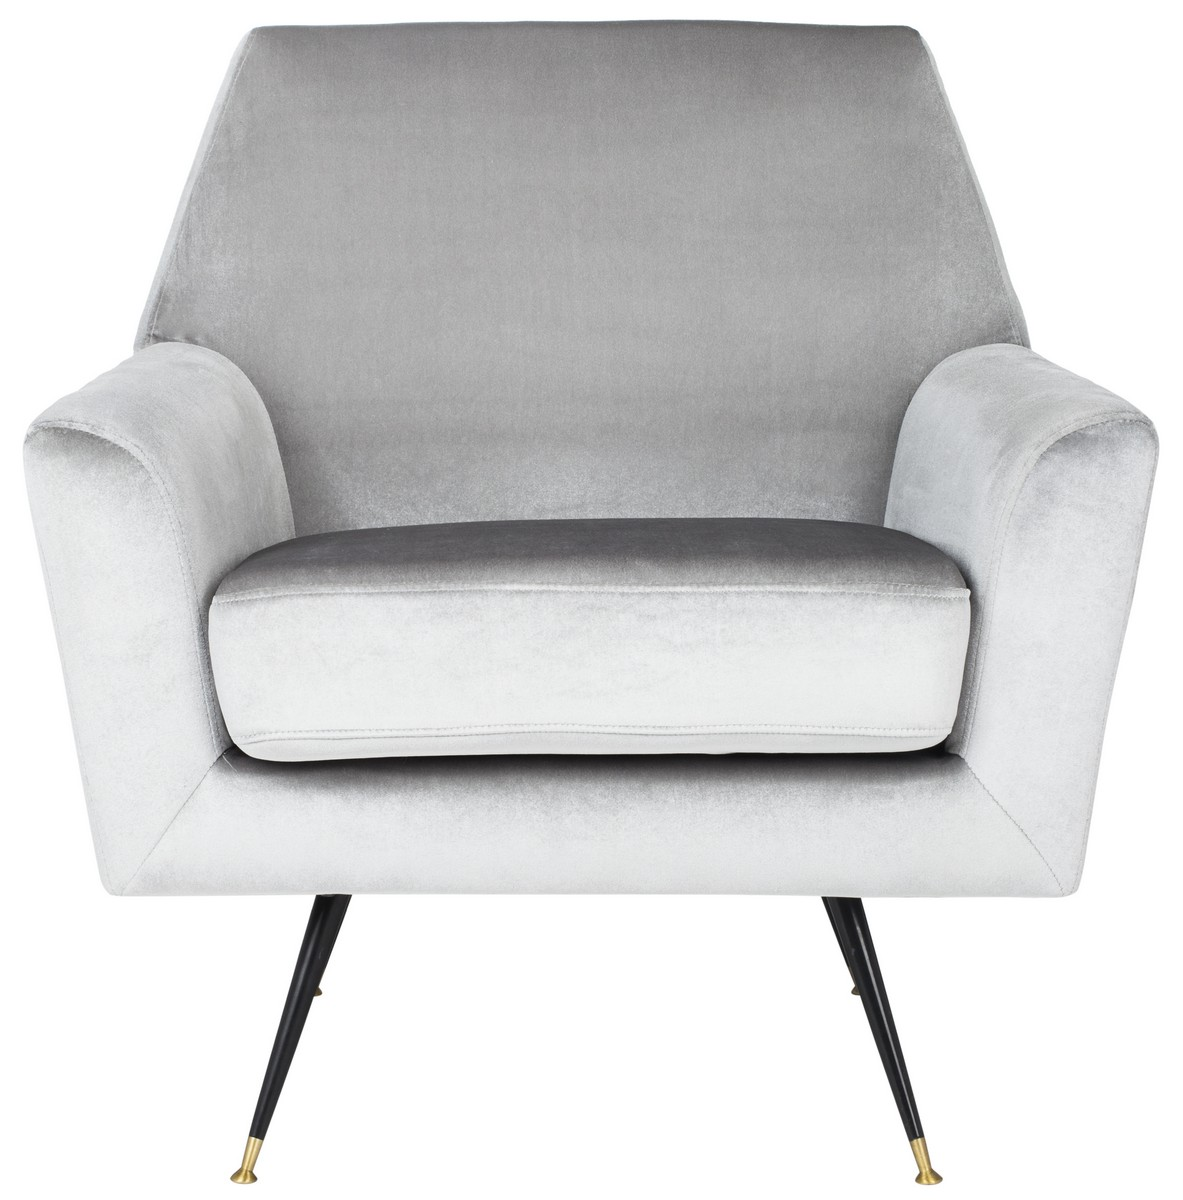 249c059045e12 Its edgy geometric angles allow for a generous seat with maximum style. A  designer favorite